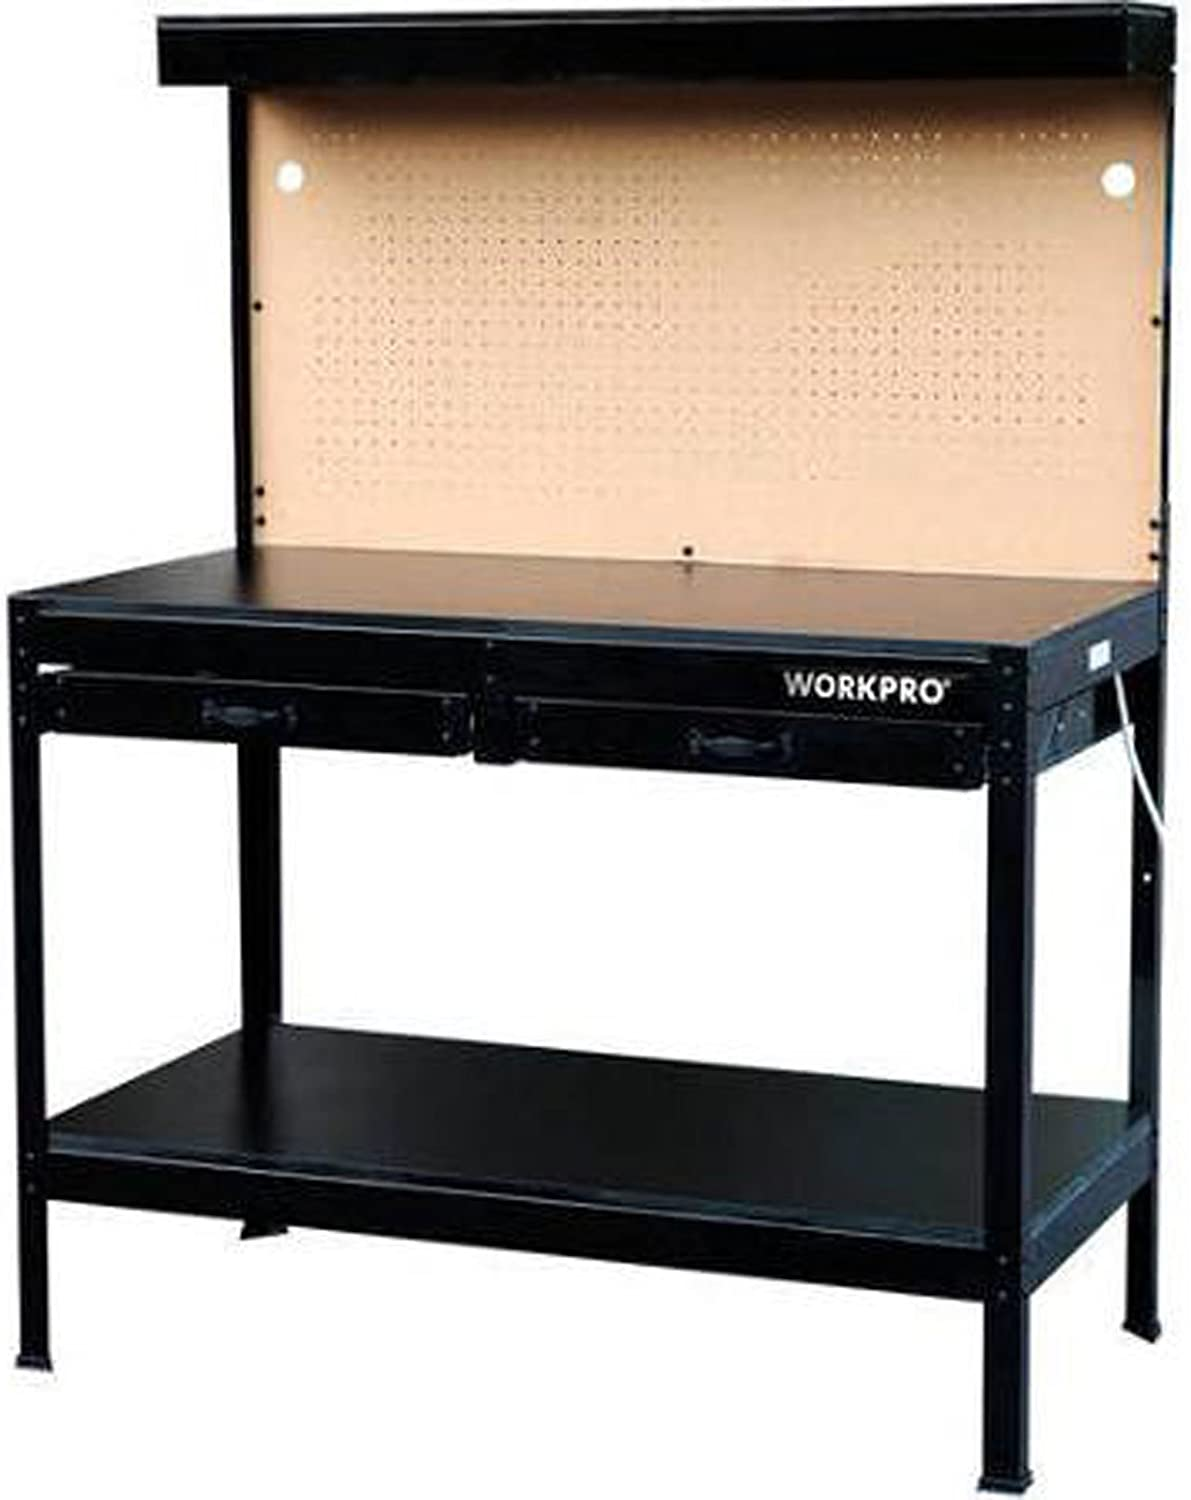 Workbench Garage Work Bench With Light Steel Tools Wood Table Home Workshop New